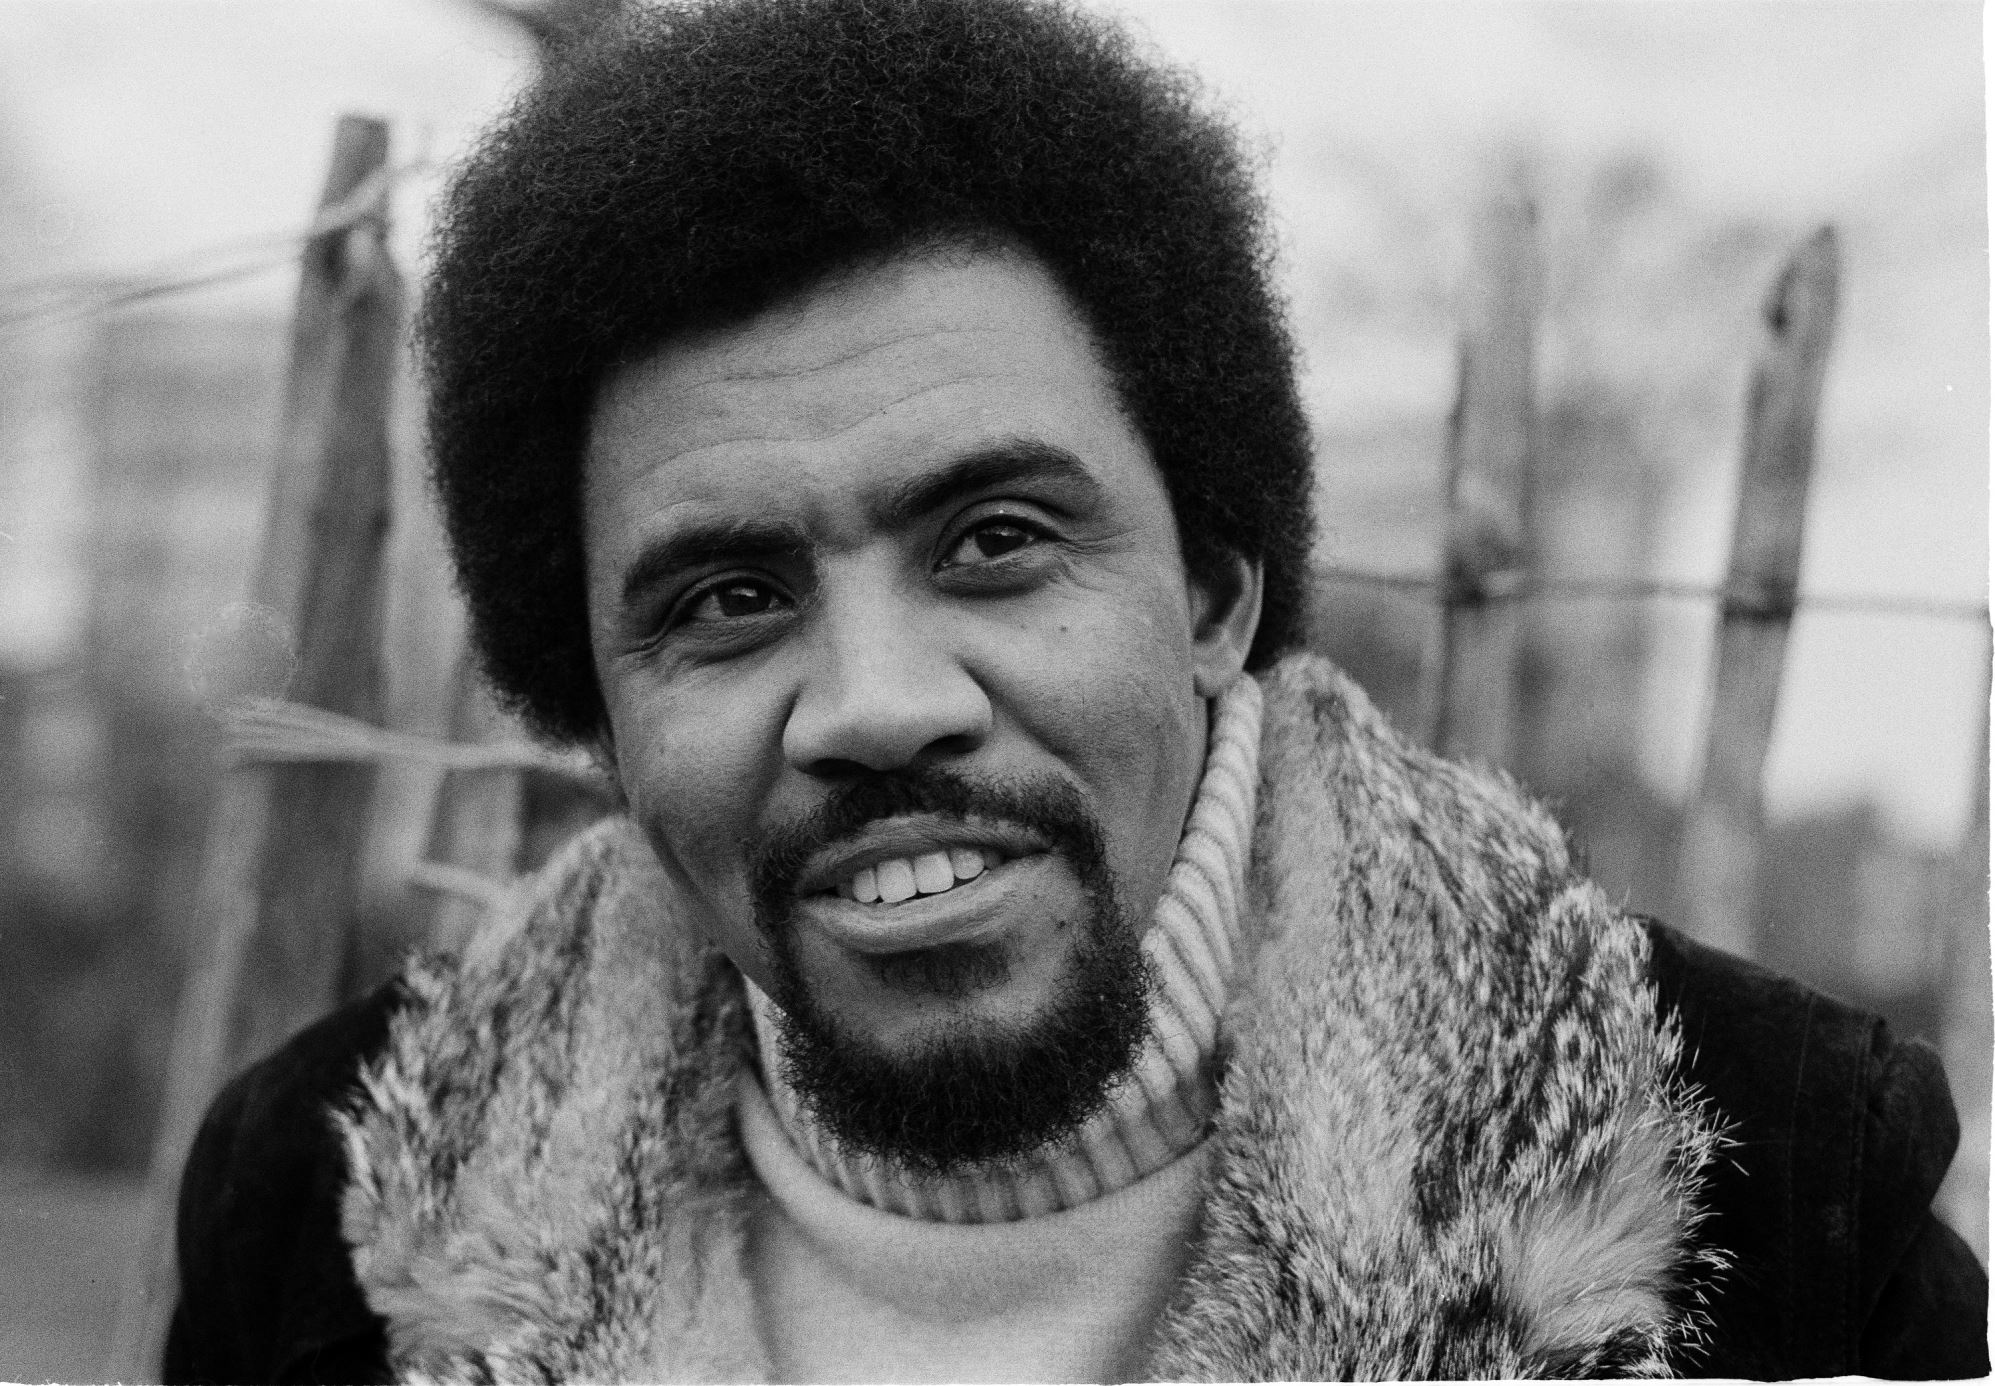 The Motown singer whose hits include What Becomes of the Brokenhearted and Hold On to My Love died at the age of 78. No details were known about his cause of death.